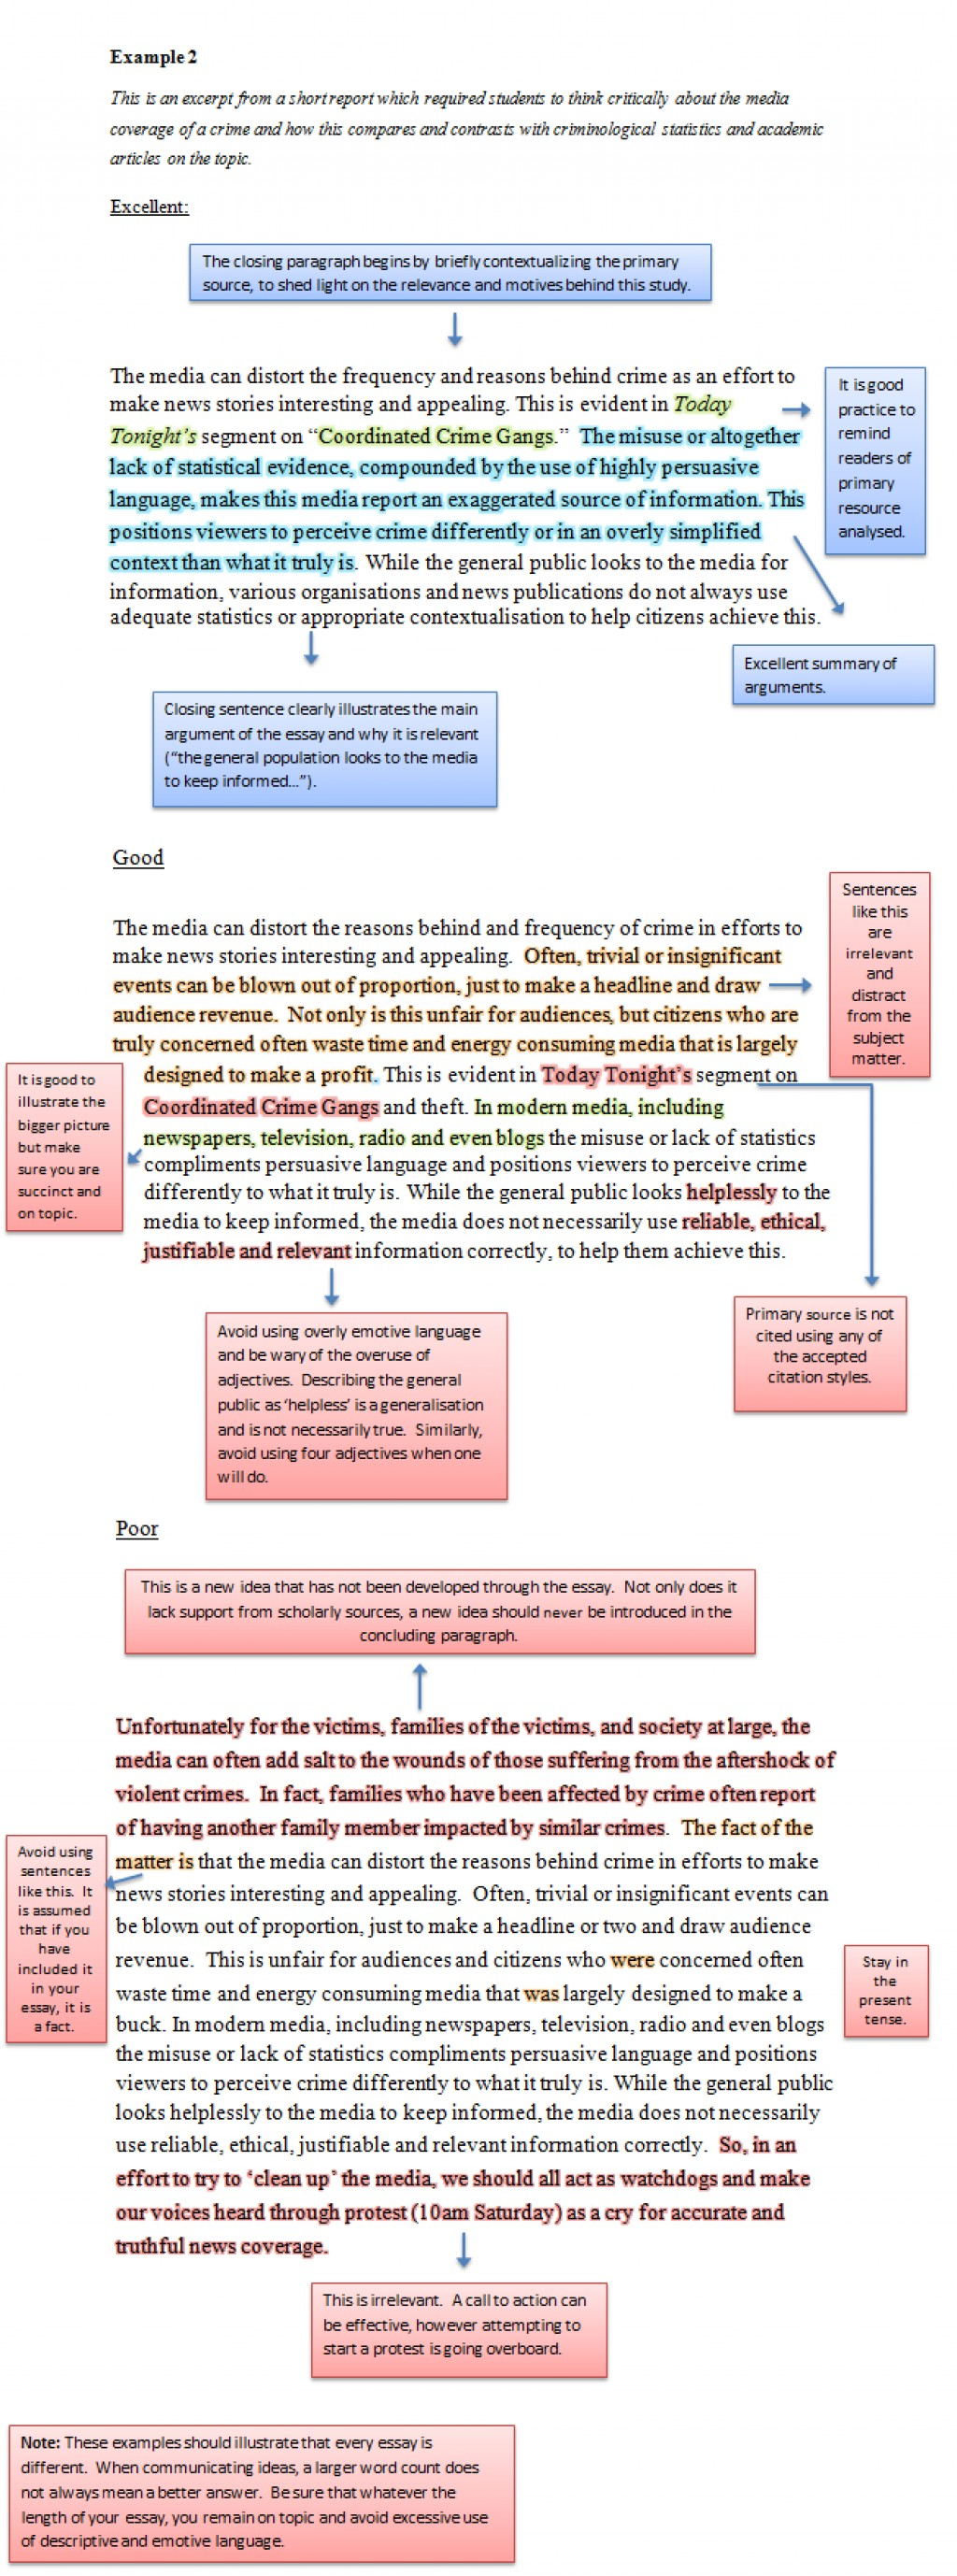 027 Conclusion Ideas For Research Paper Marvelous A Large